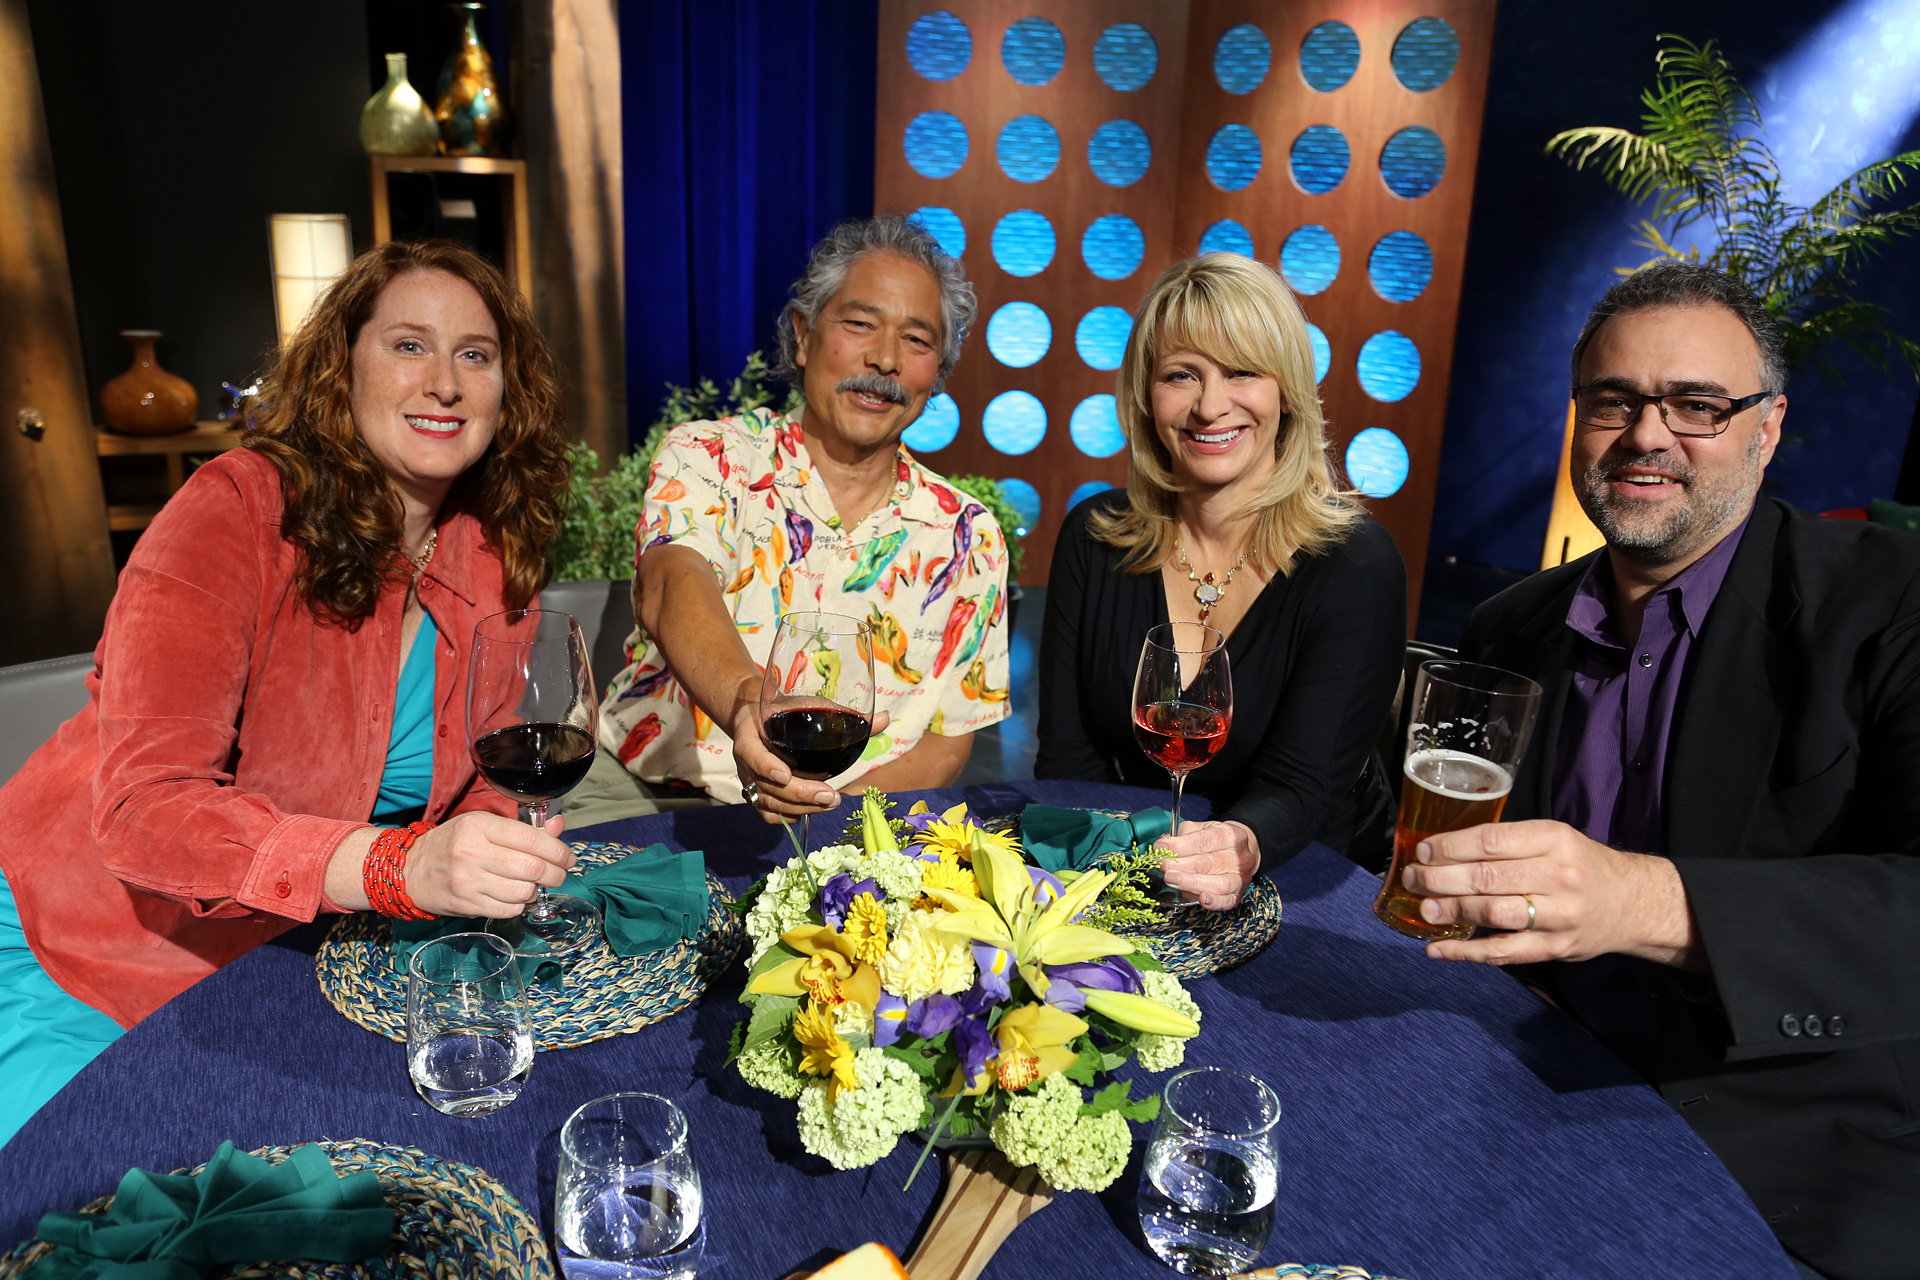 Host Leslie Sbrocco and guests on the set of the episode 13 of season 11.